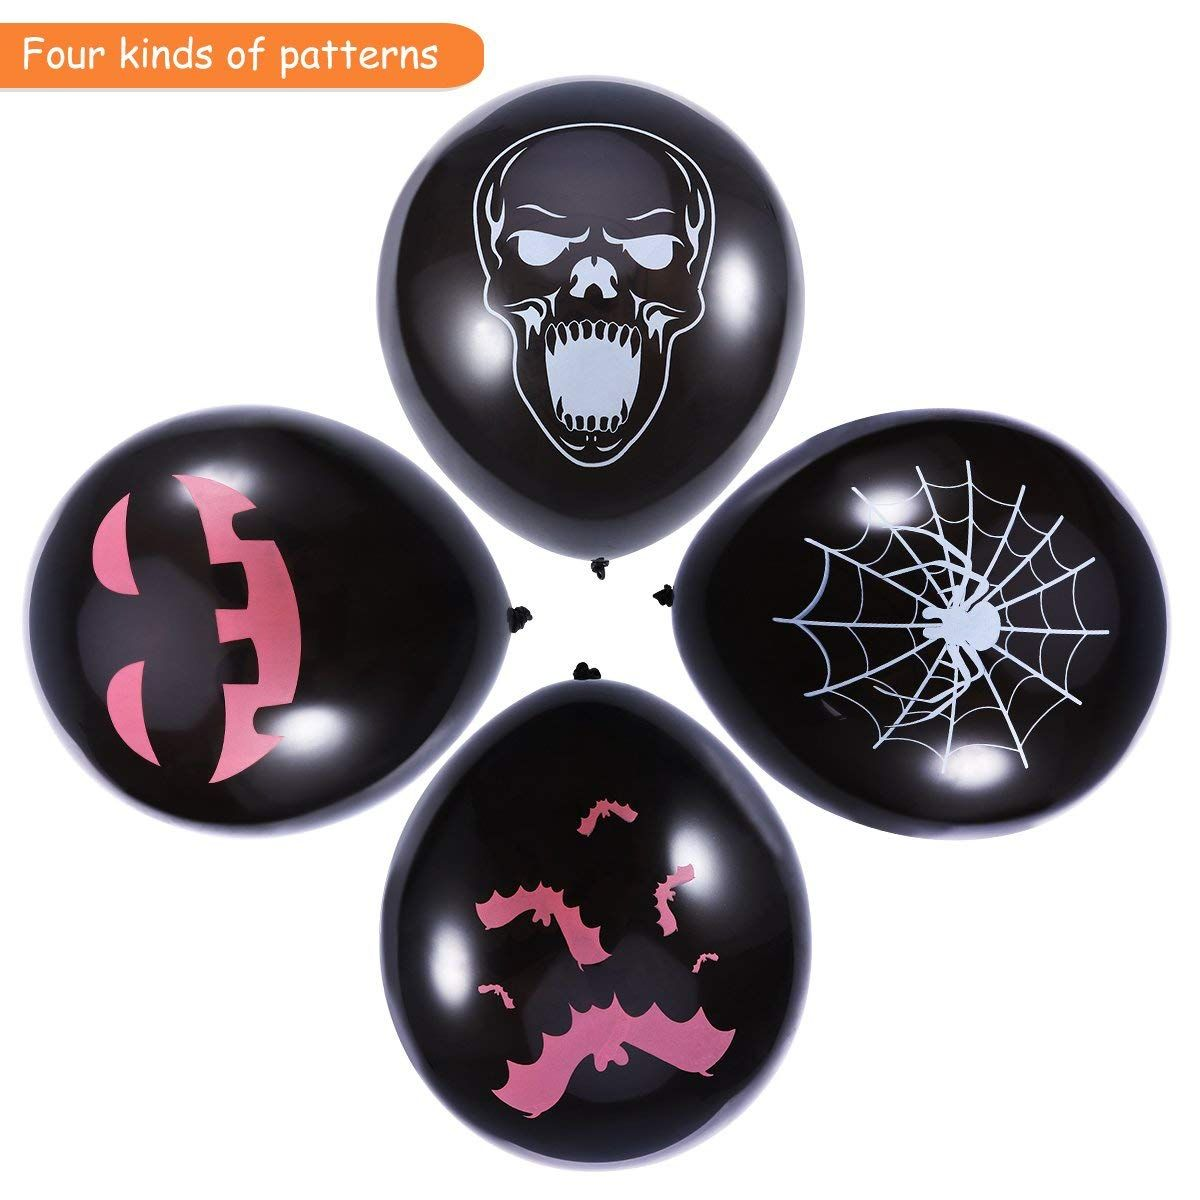 Deko Discount 24 Unomor Halloween Deko Latex Luftballone Fur Party Dekoration 24